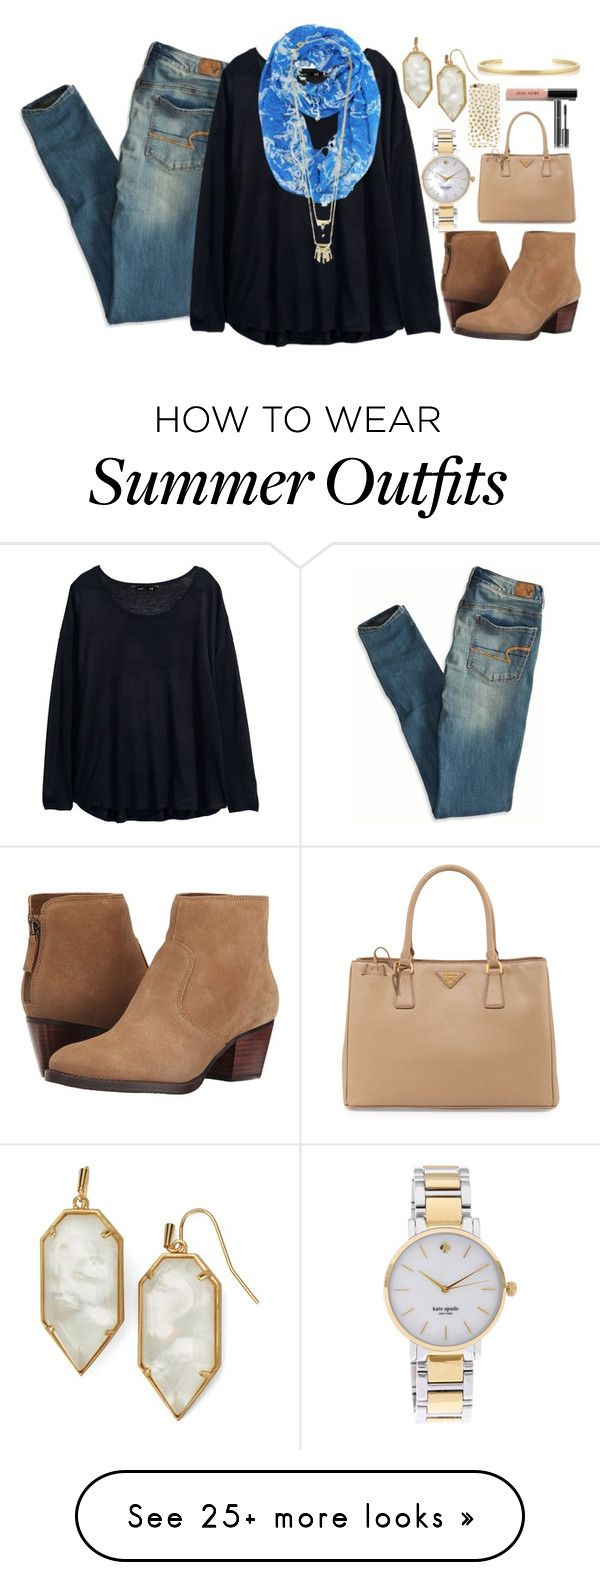 """Borrrreeeeddddddd"" by classically-kendall on Polyvore featuring American Eagle Outfitters, H&M, Kendra Scott, Kate Spade, Alexis Bittar, Nine West, Prada, BaubleBar, Jennifer Fisher and Bobbi Brown Cosmetics"